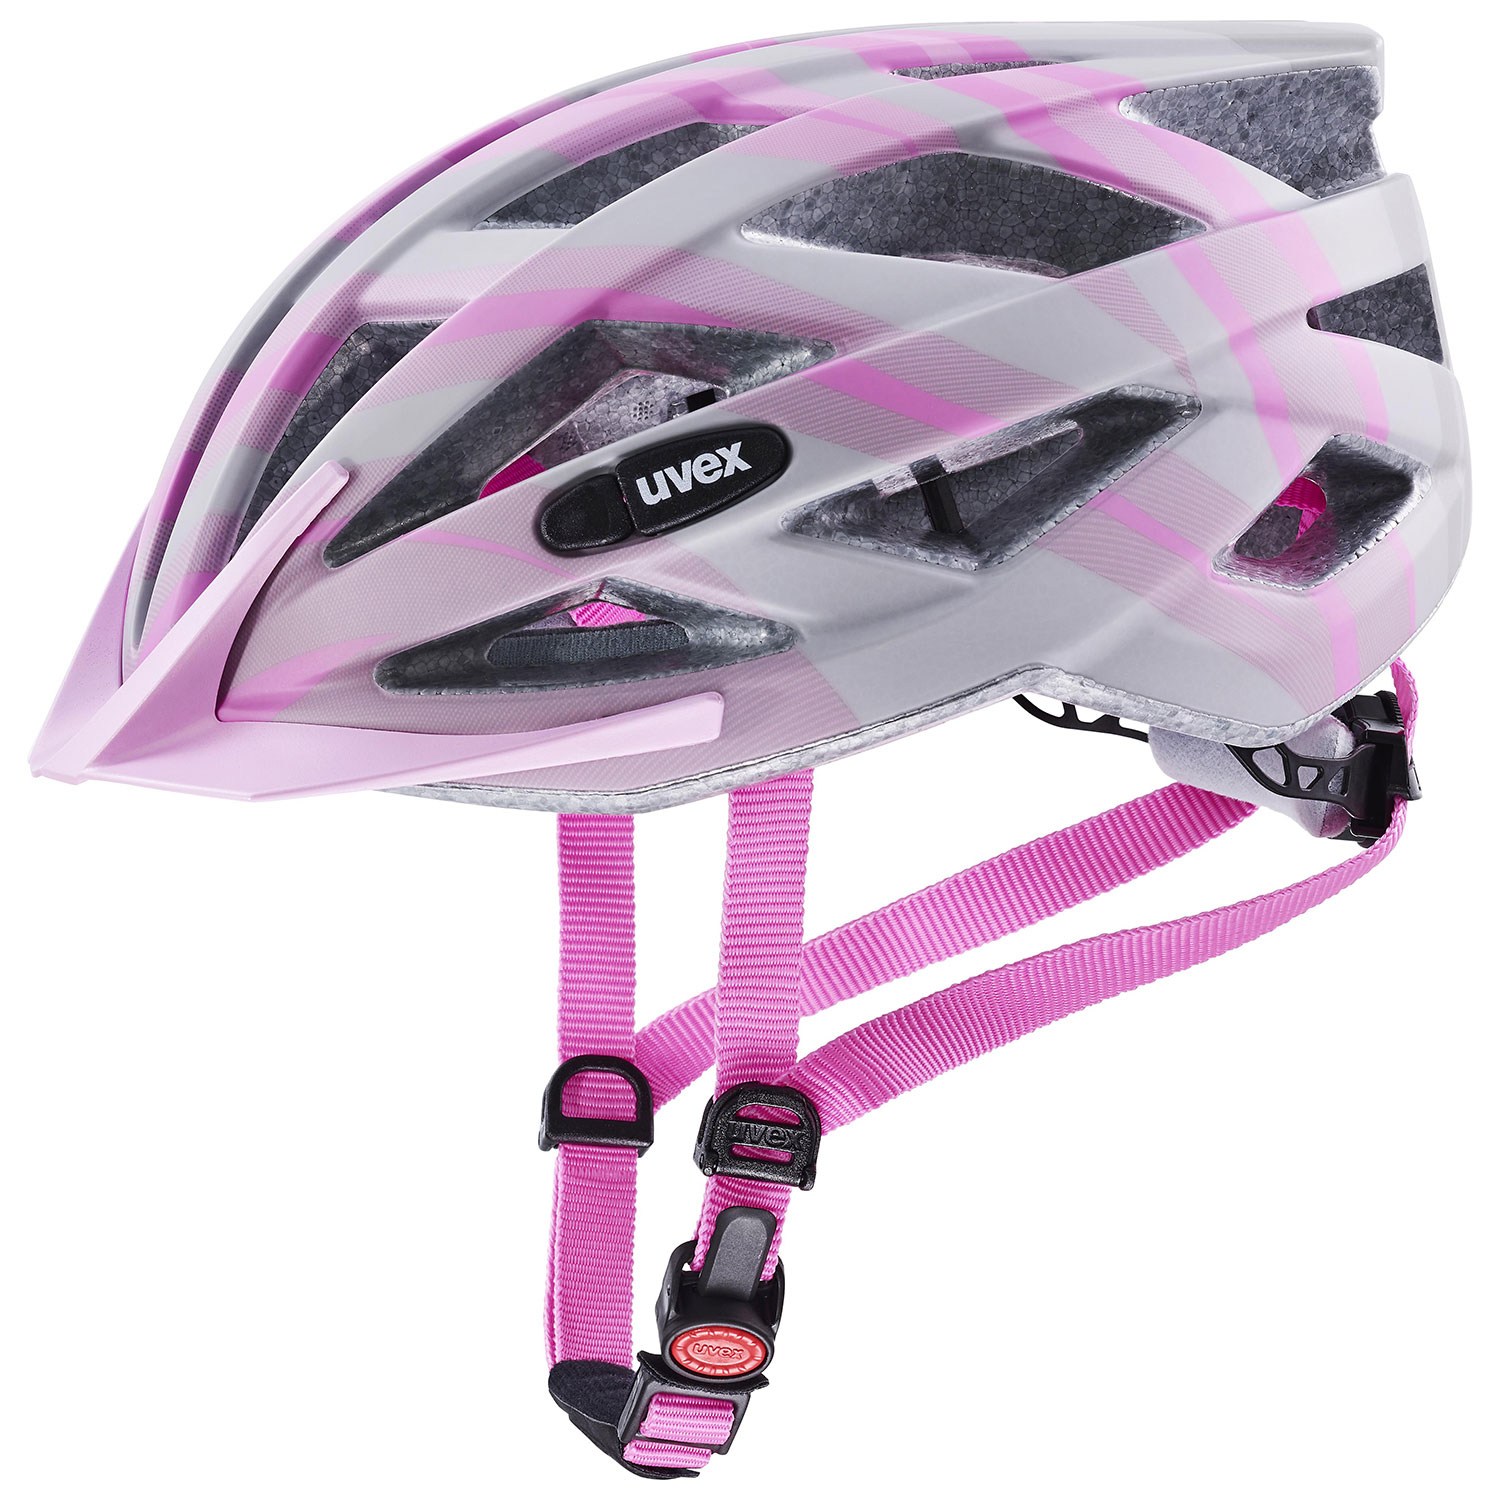 2021 UVEX HELMA AIR WING CC, GREY - ROSÉ MAT 56-60